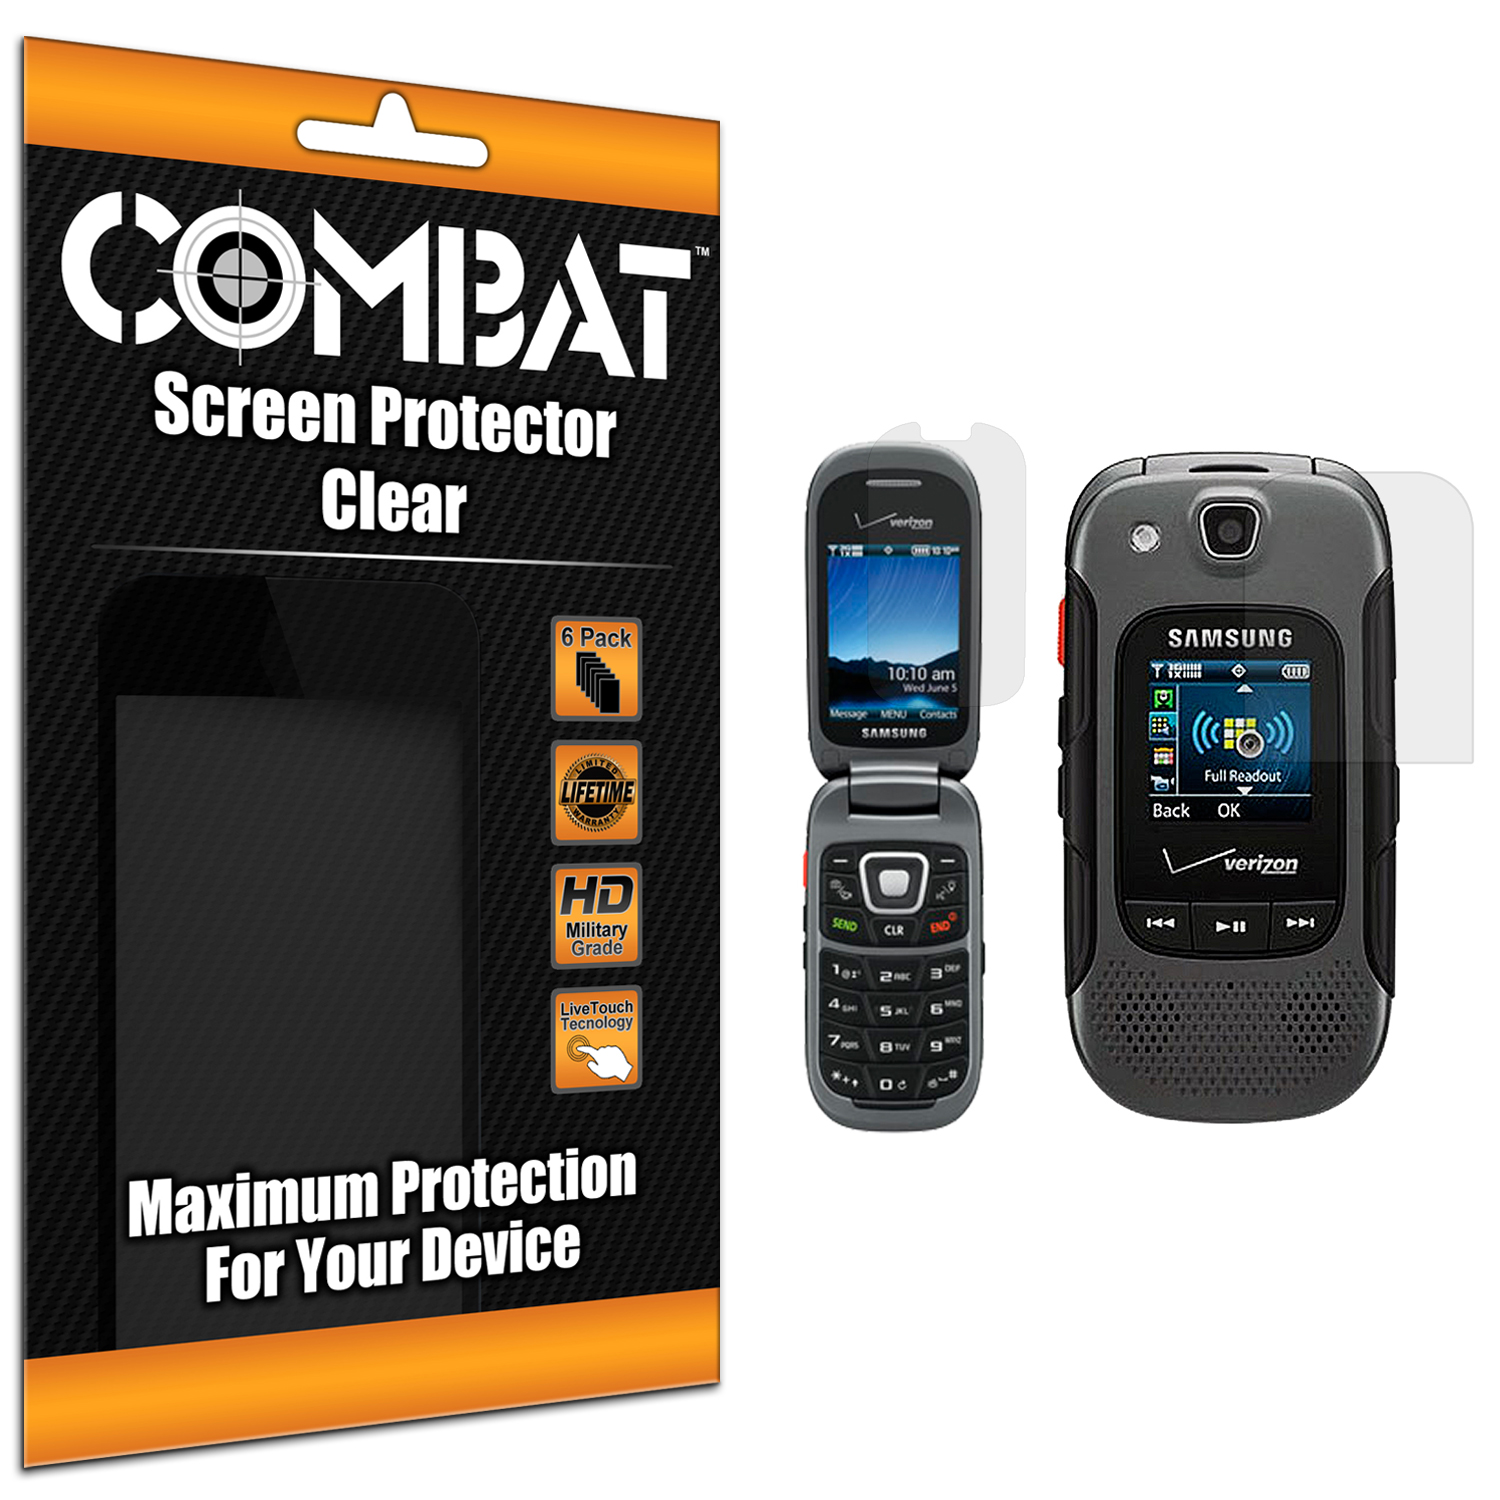 Samsung Convoy 3 U680 Combat 6 Pack HD Clear Screen Protector